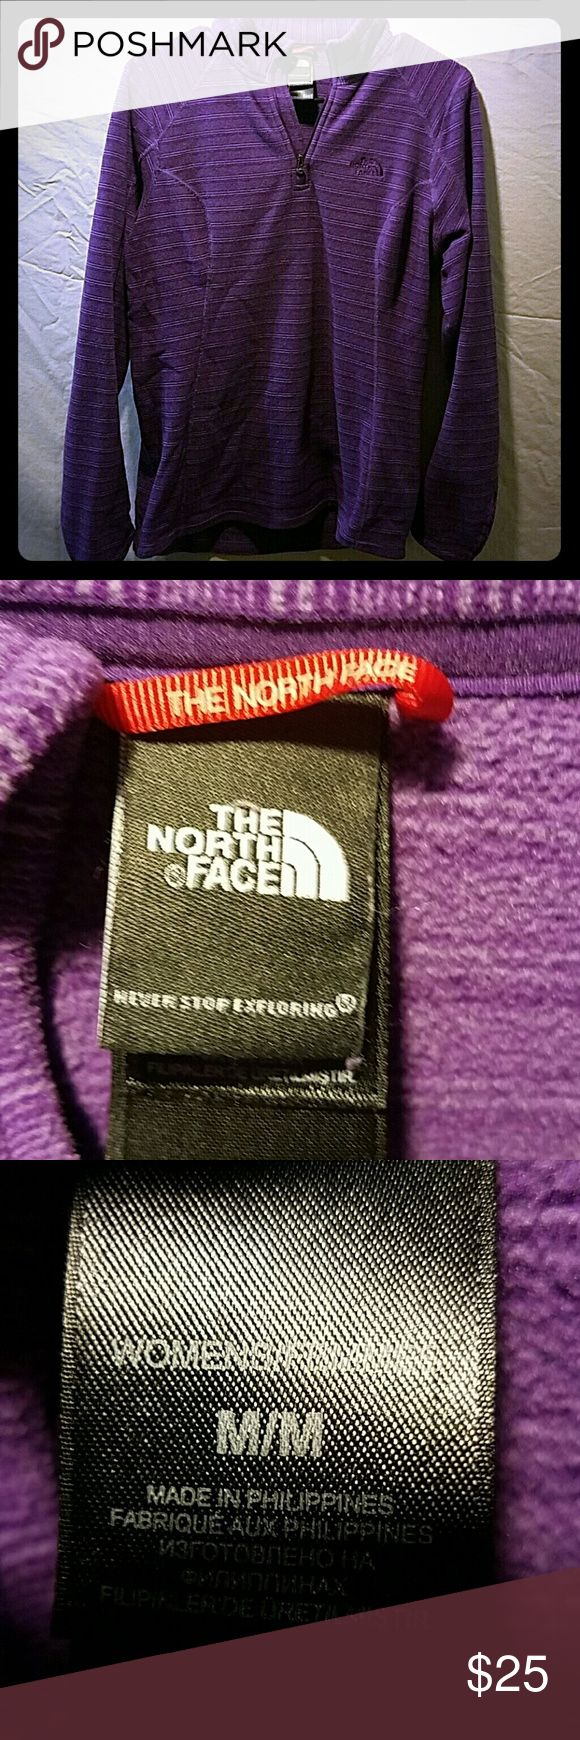 * SALE! The North Face fleece pullover - MED. Purple long sleeved striped fleece pull over quarter zip size medium ski gear  Feel free to make an offer & don't forget to check out my other listings.  You can save 15% by bundling! The North Face Tops Sweatshirts & Hoodies